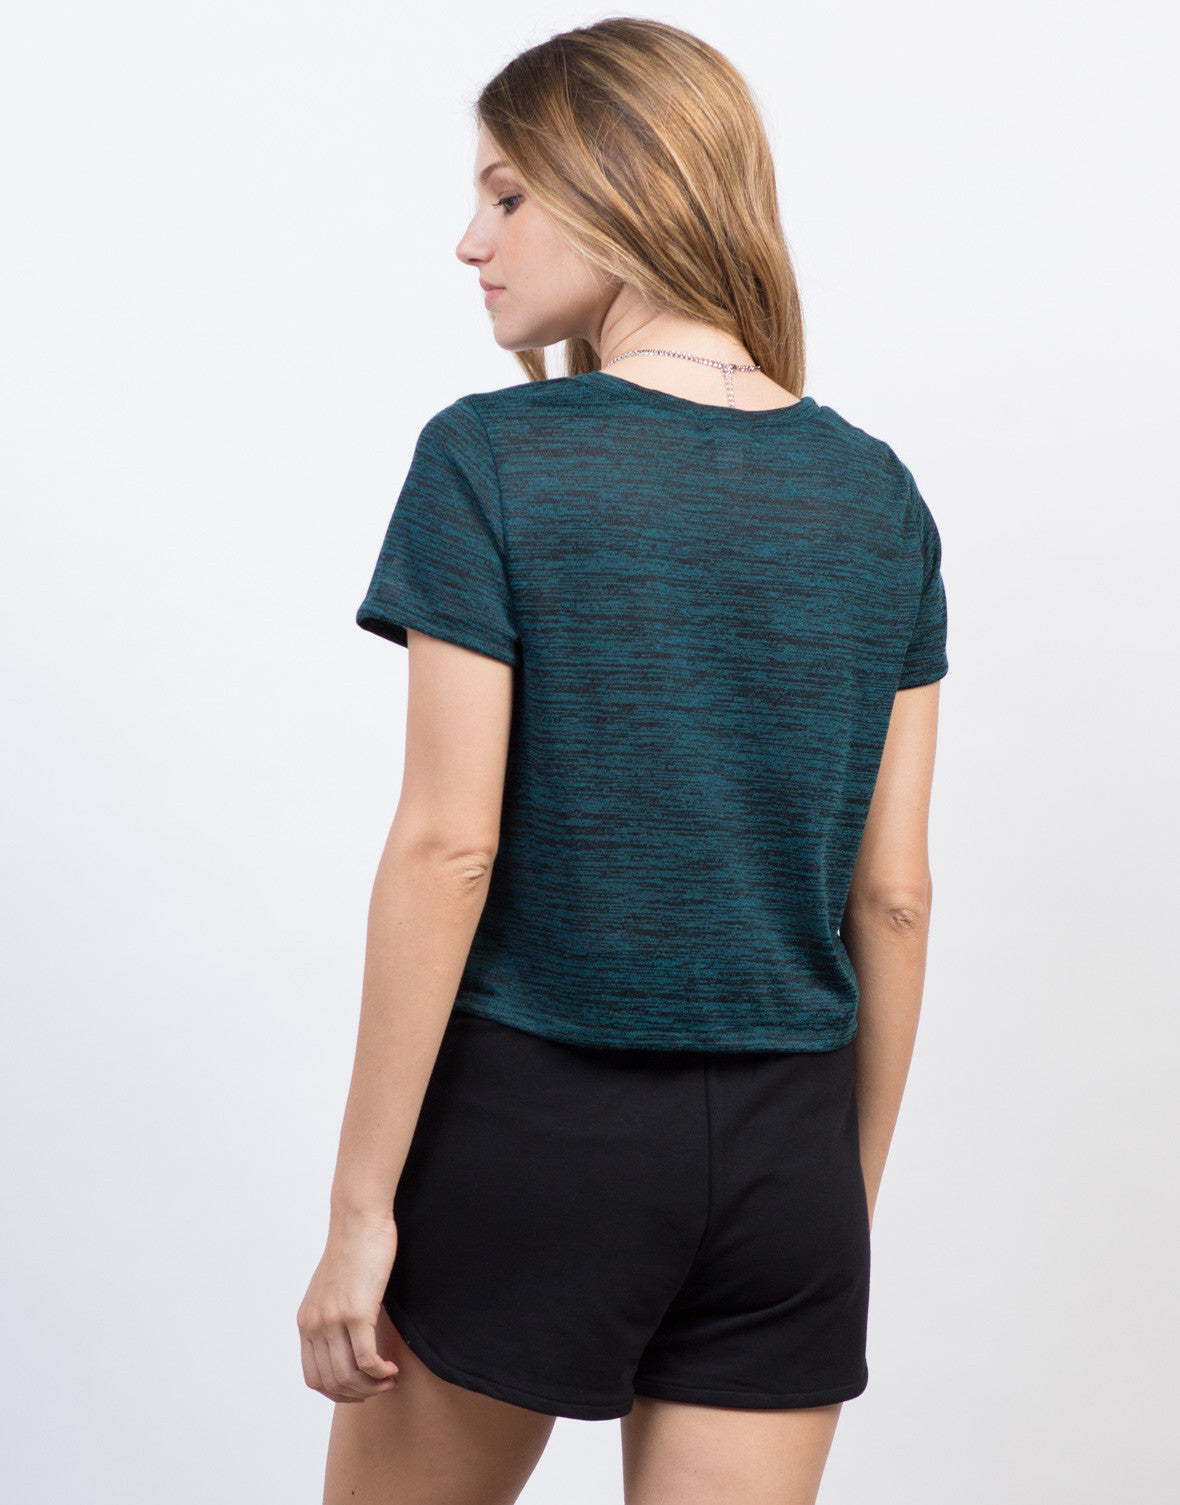 Back View of Heathered Pocket Cropped Tee